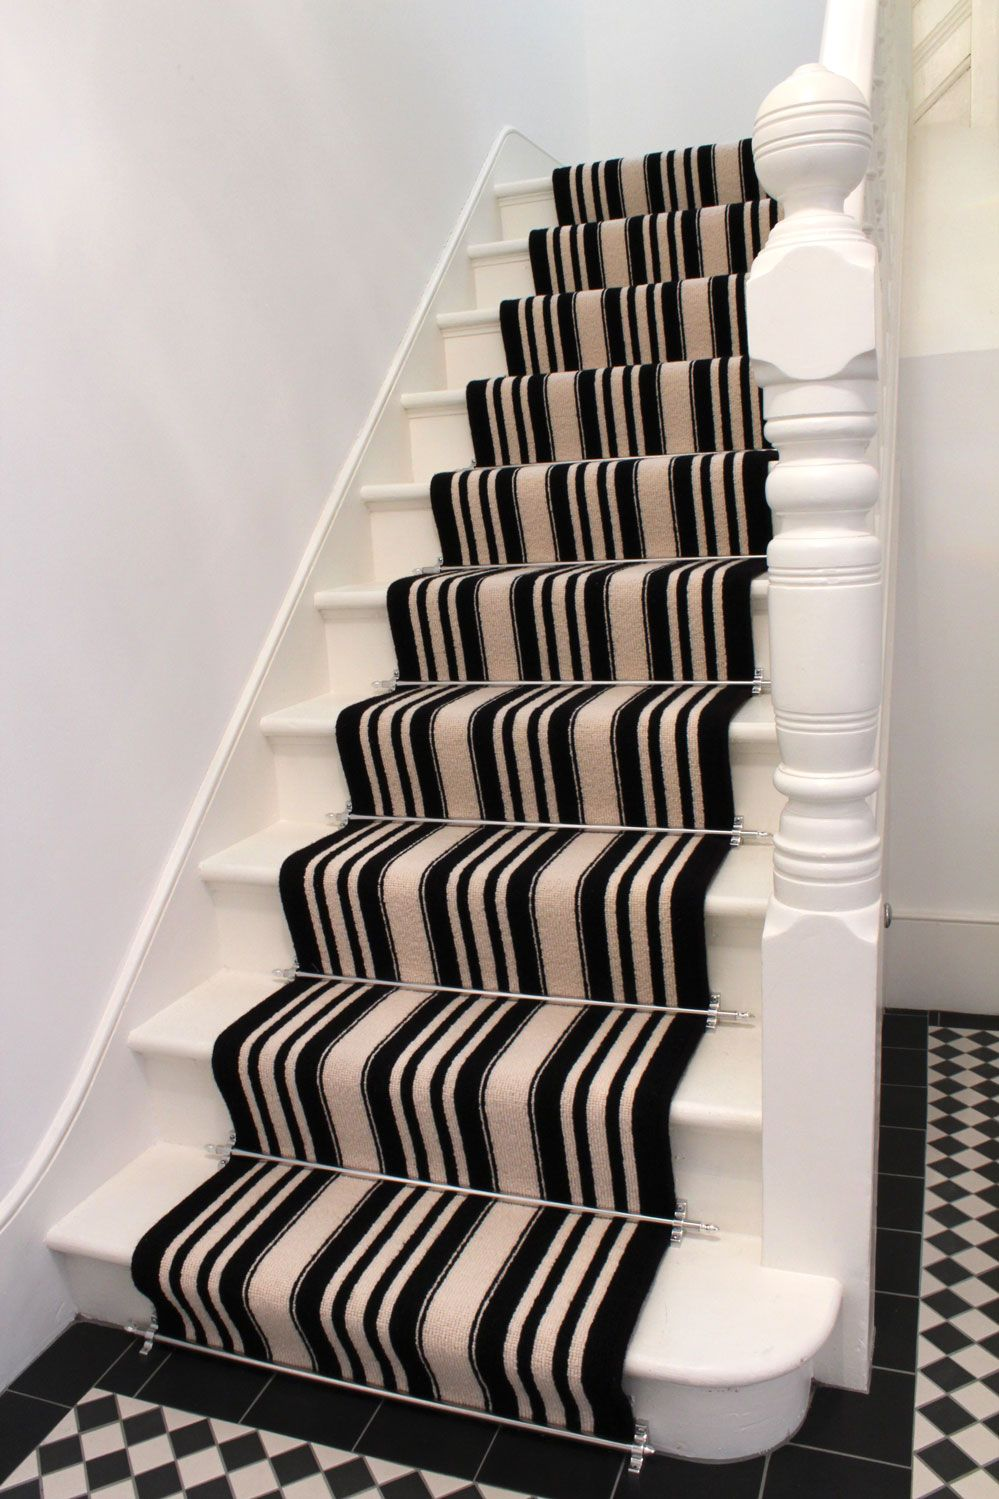 Striped Carpet Black White With Stair Rods Carpet Stairs